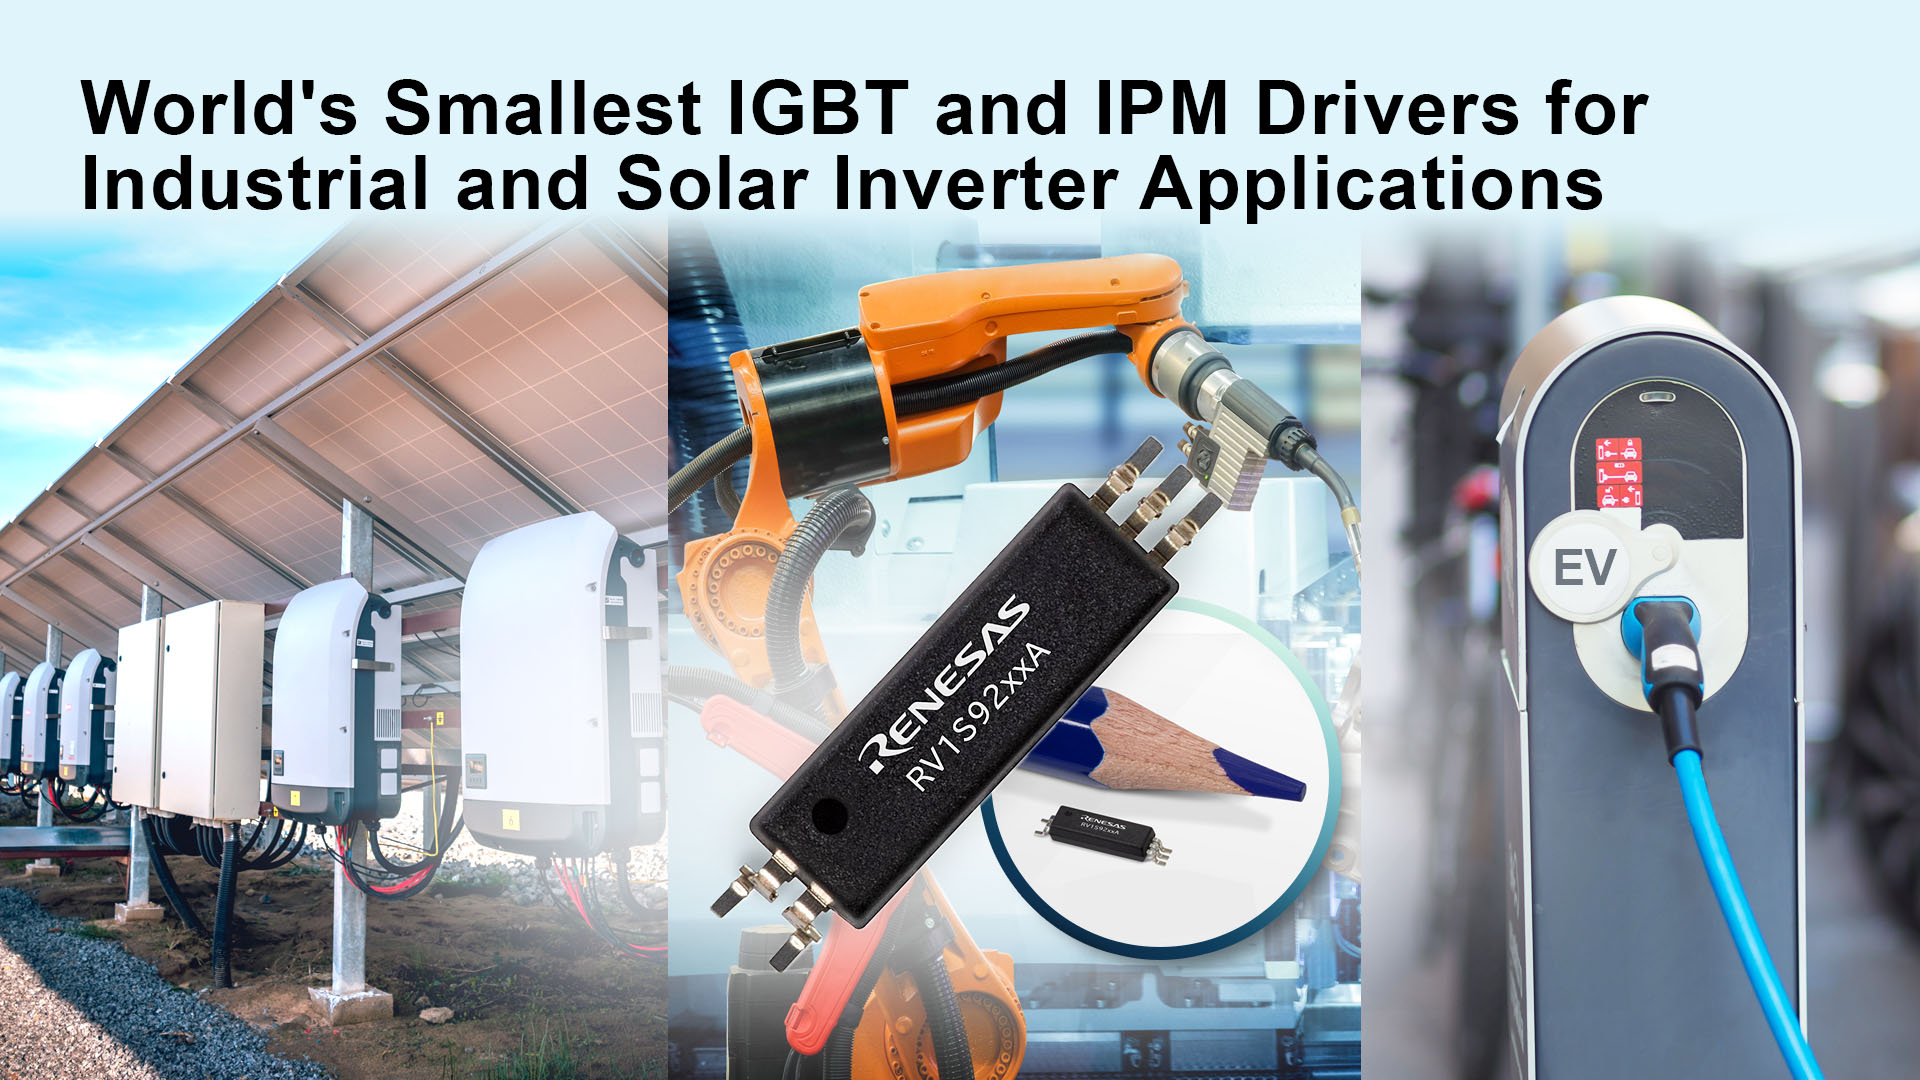 optical-isolated IGBT, power module drivers fit in cramped quarters May 27, 2021 By Redding Traiger